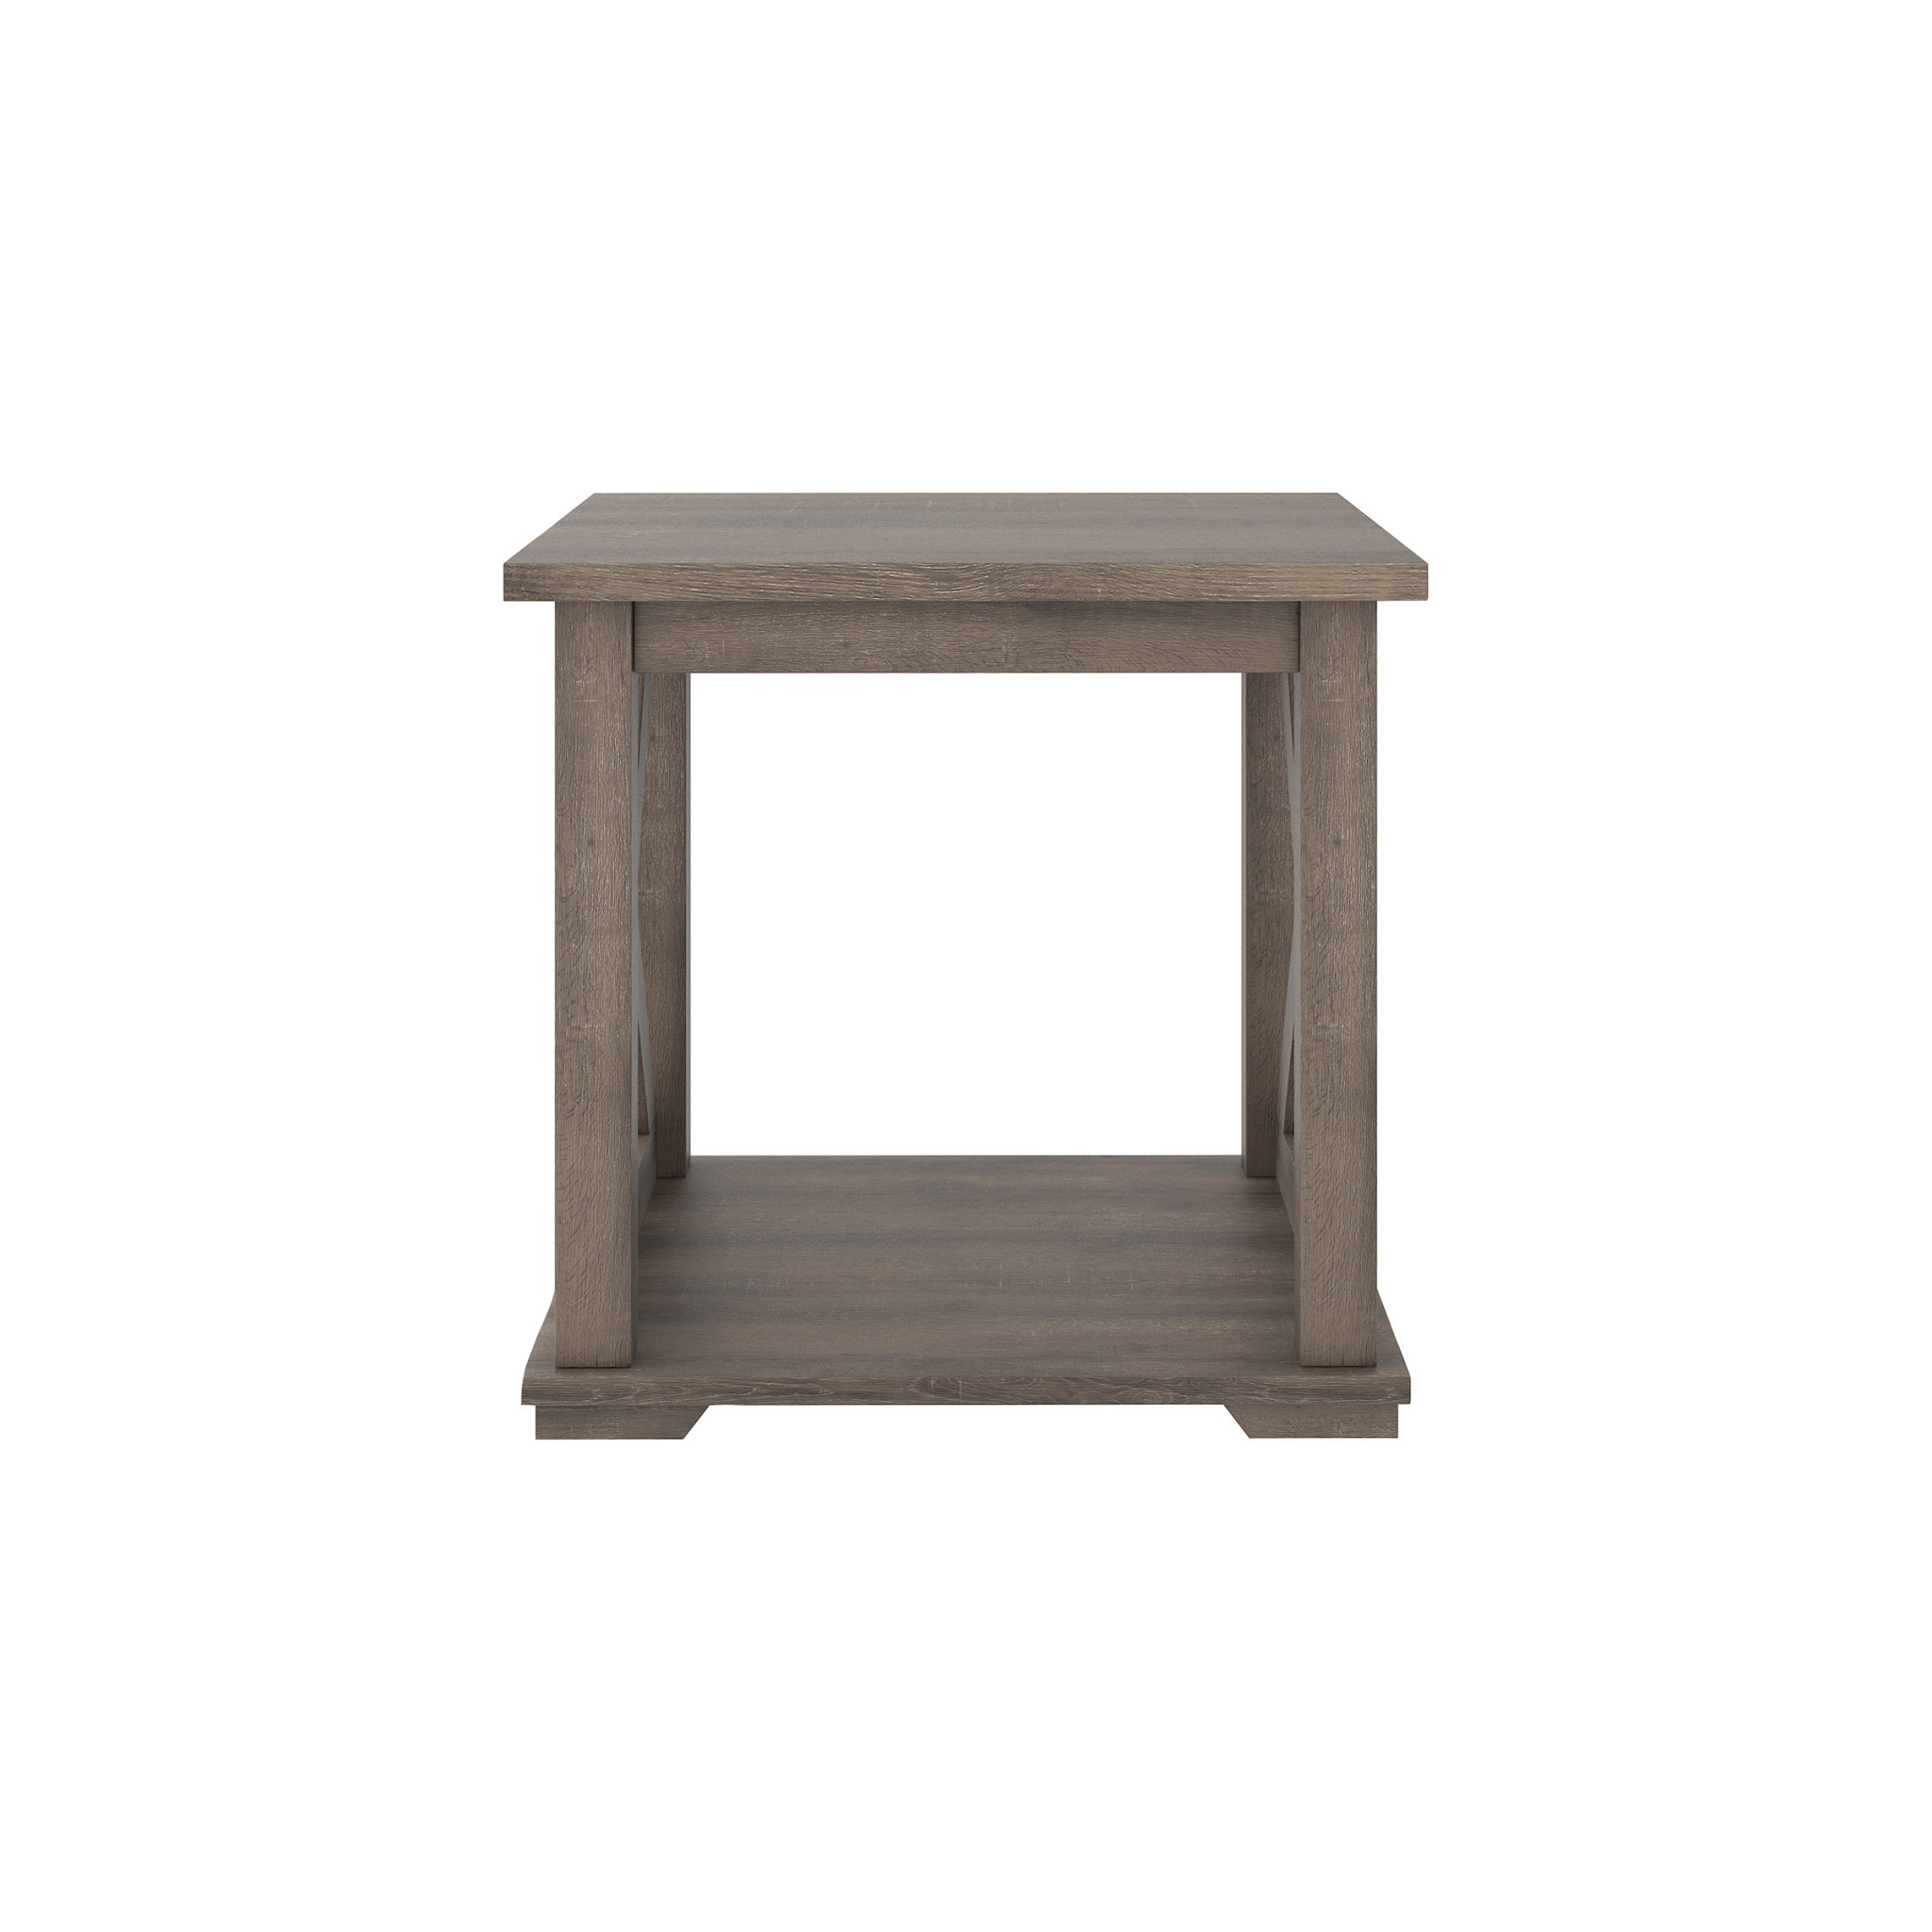 """Benchcraft """"Arlenbry"""" Square End Table- Gray- T275-2"""